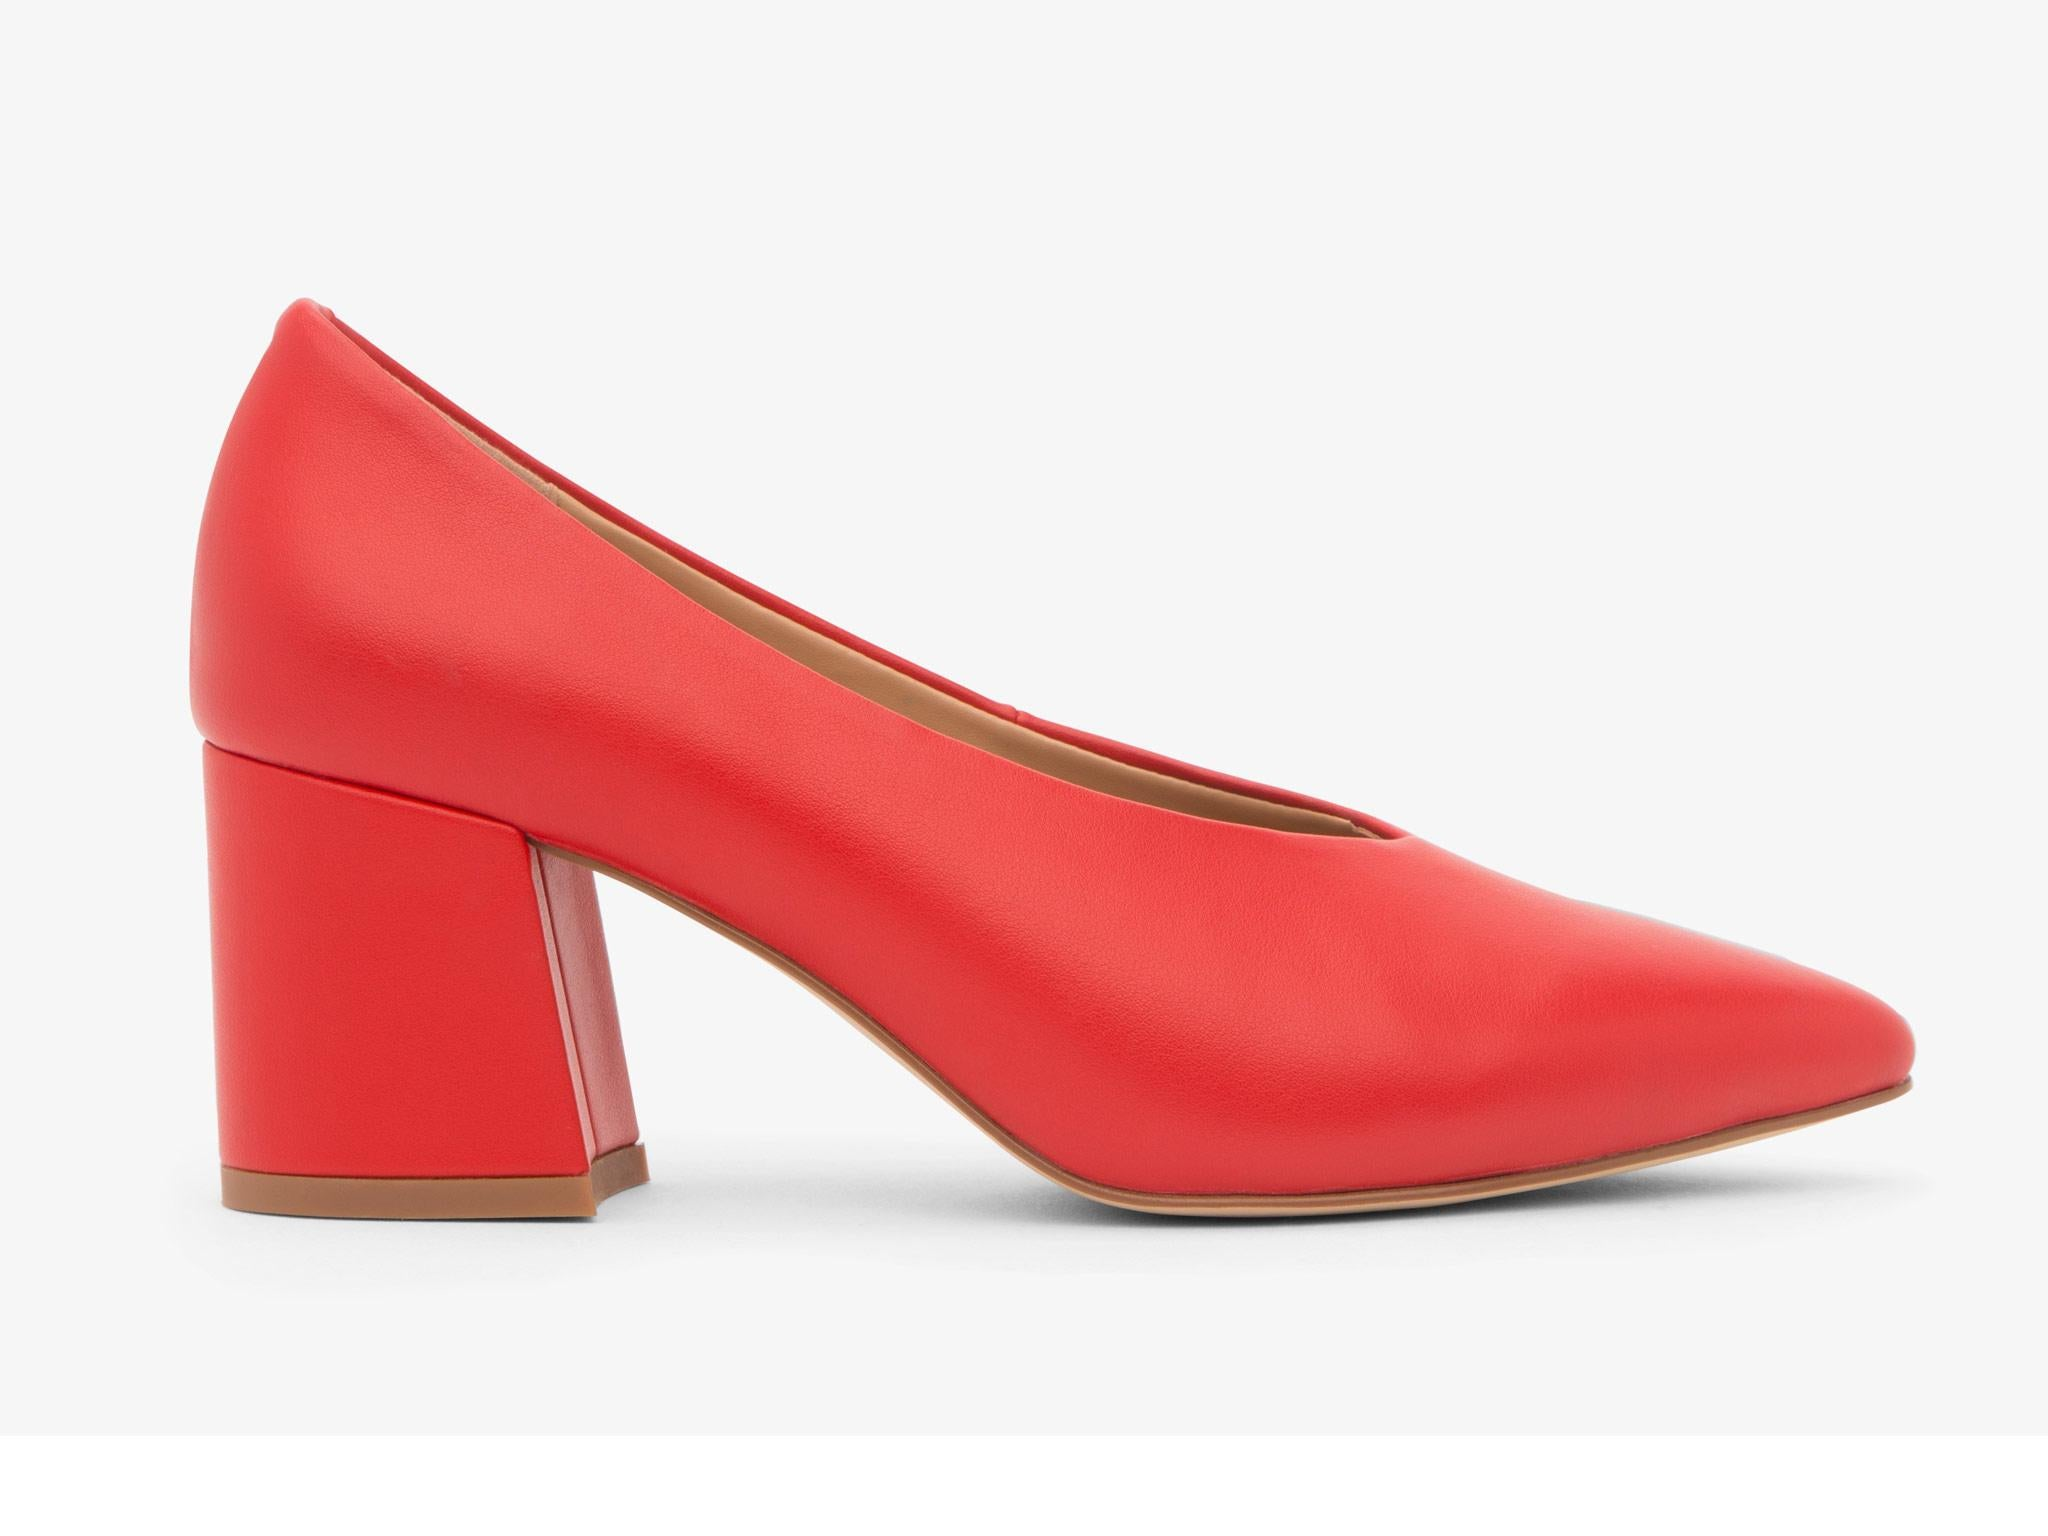 16 Best Vegan Shoes For Women The Independent High Heels Glamour Suede Red Matt And Nat Sibyl 85